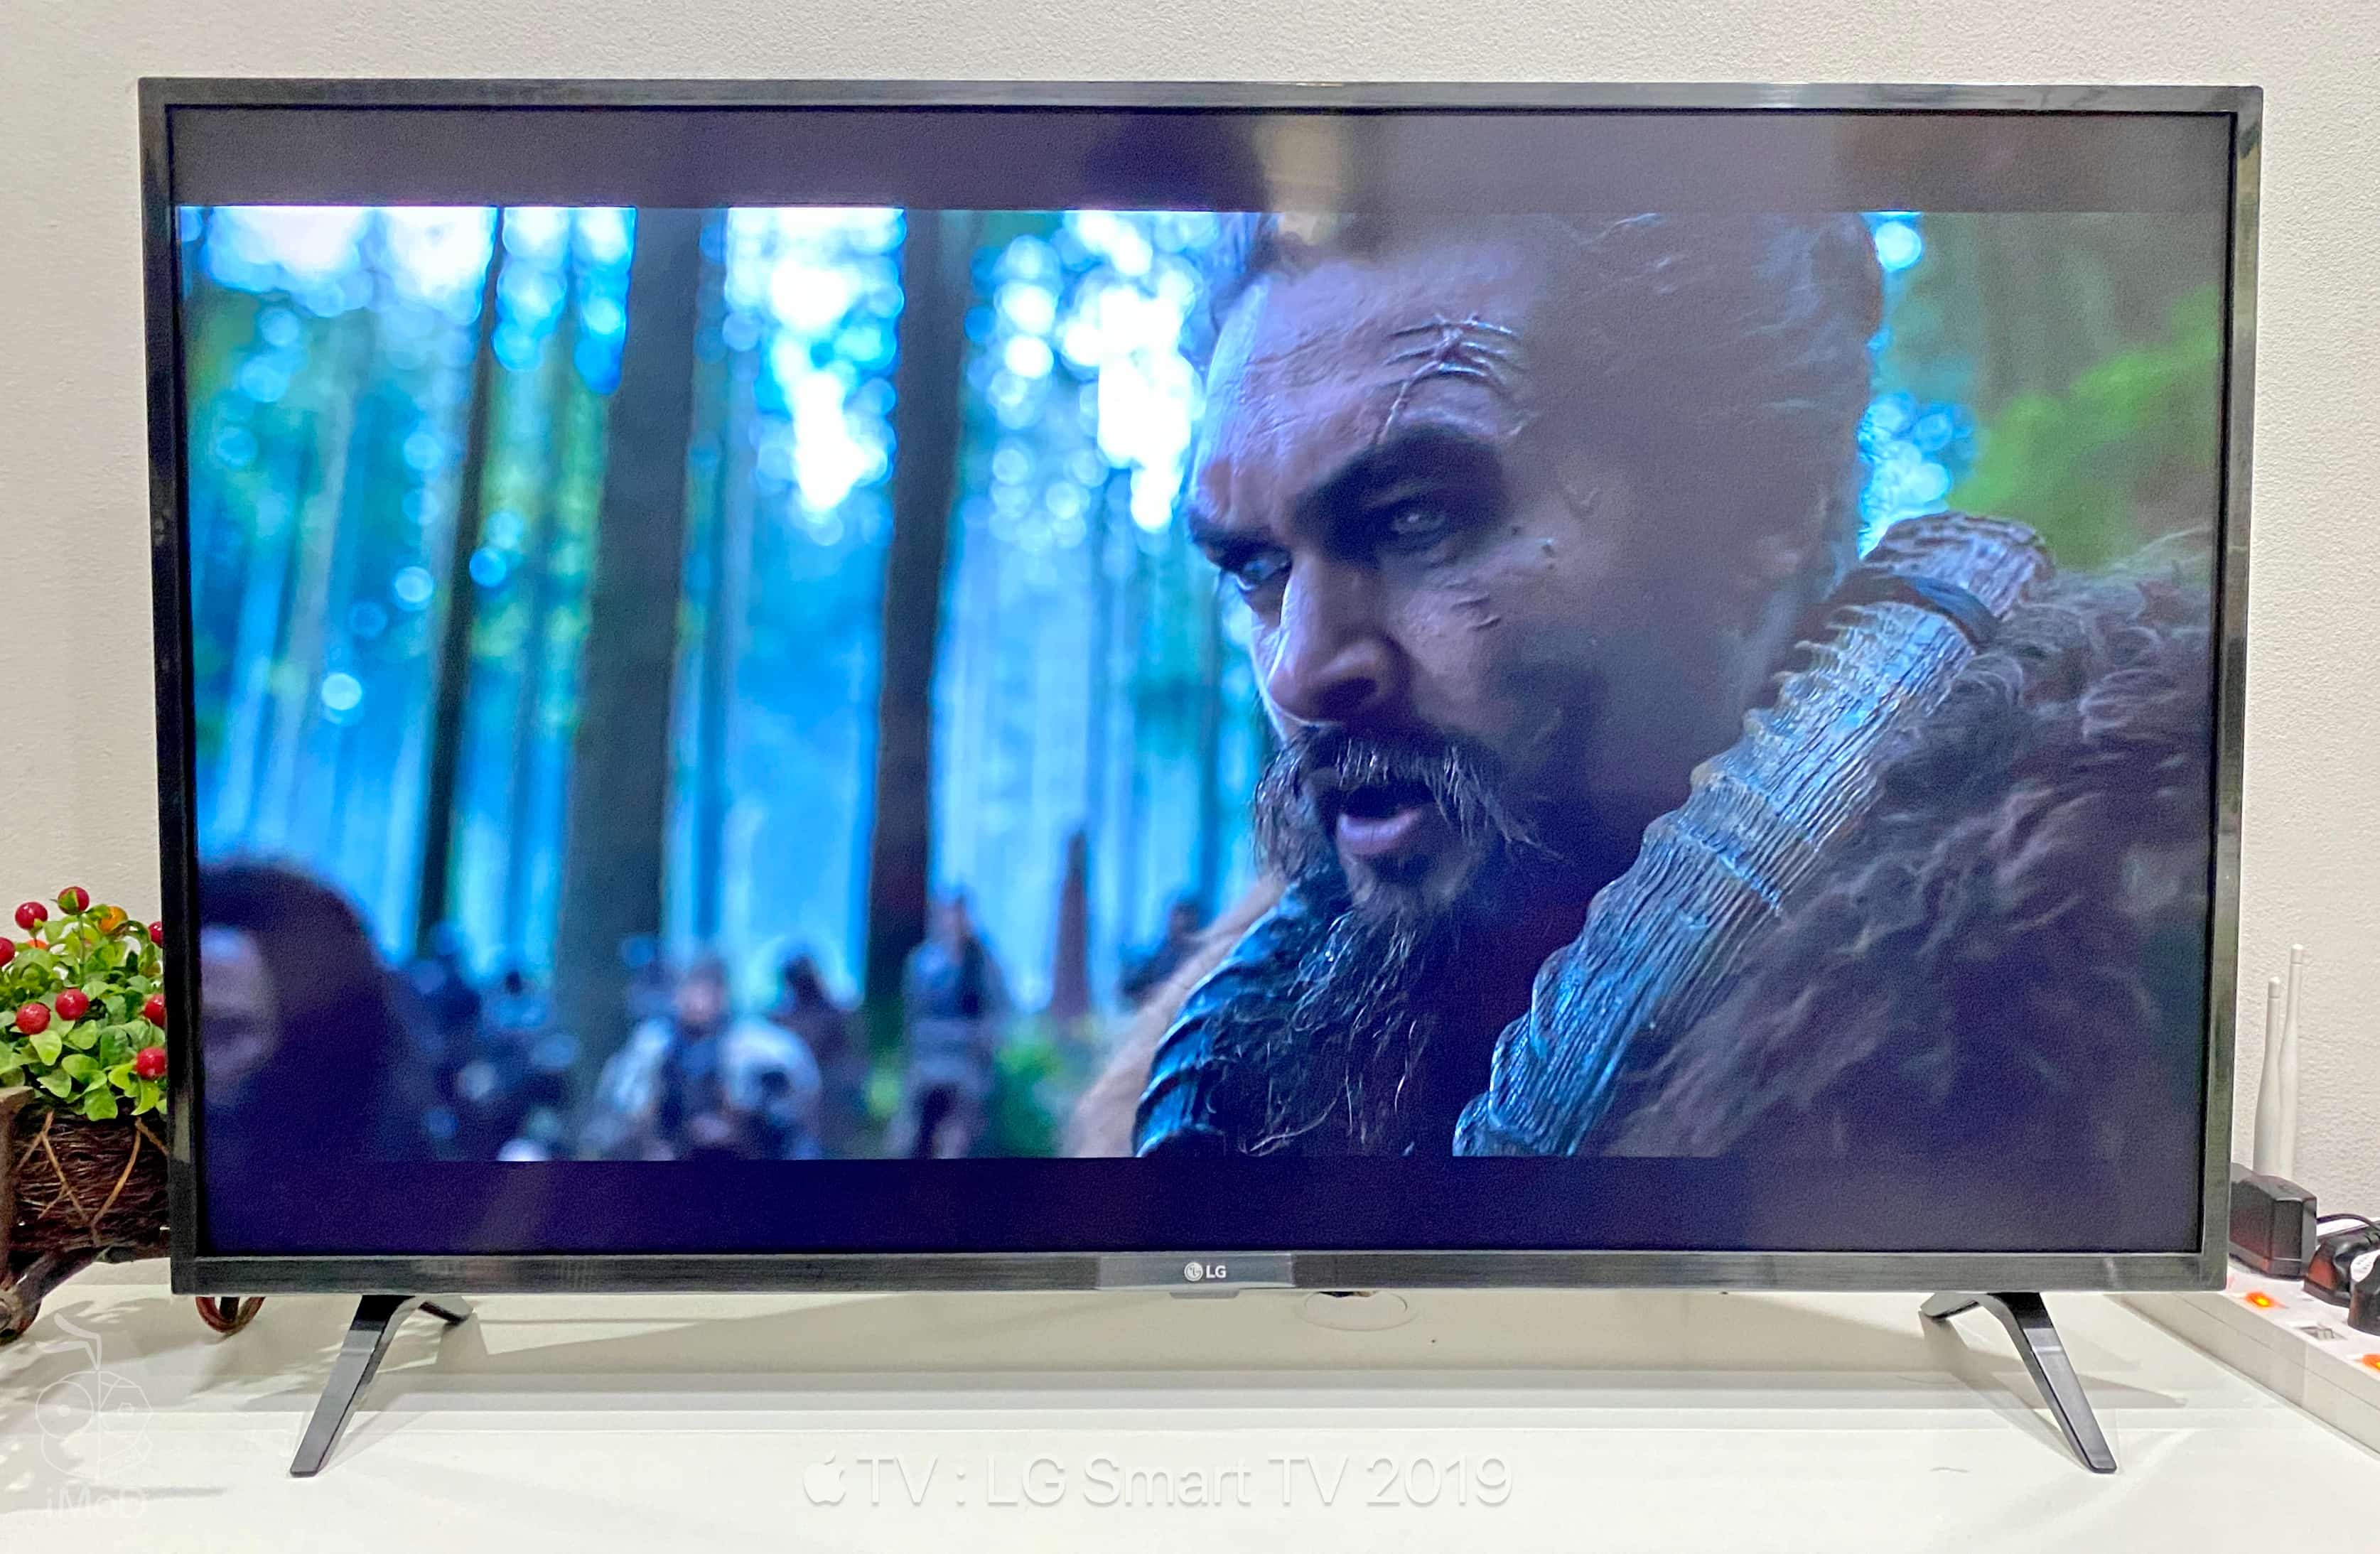 Apple Tv Available Lg Smart Tv 2019 Img 7